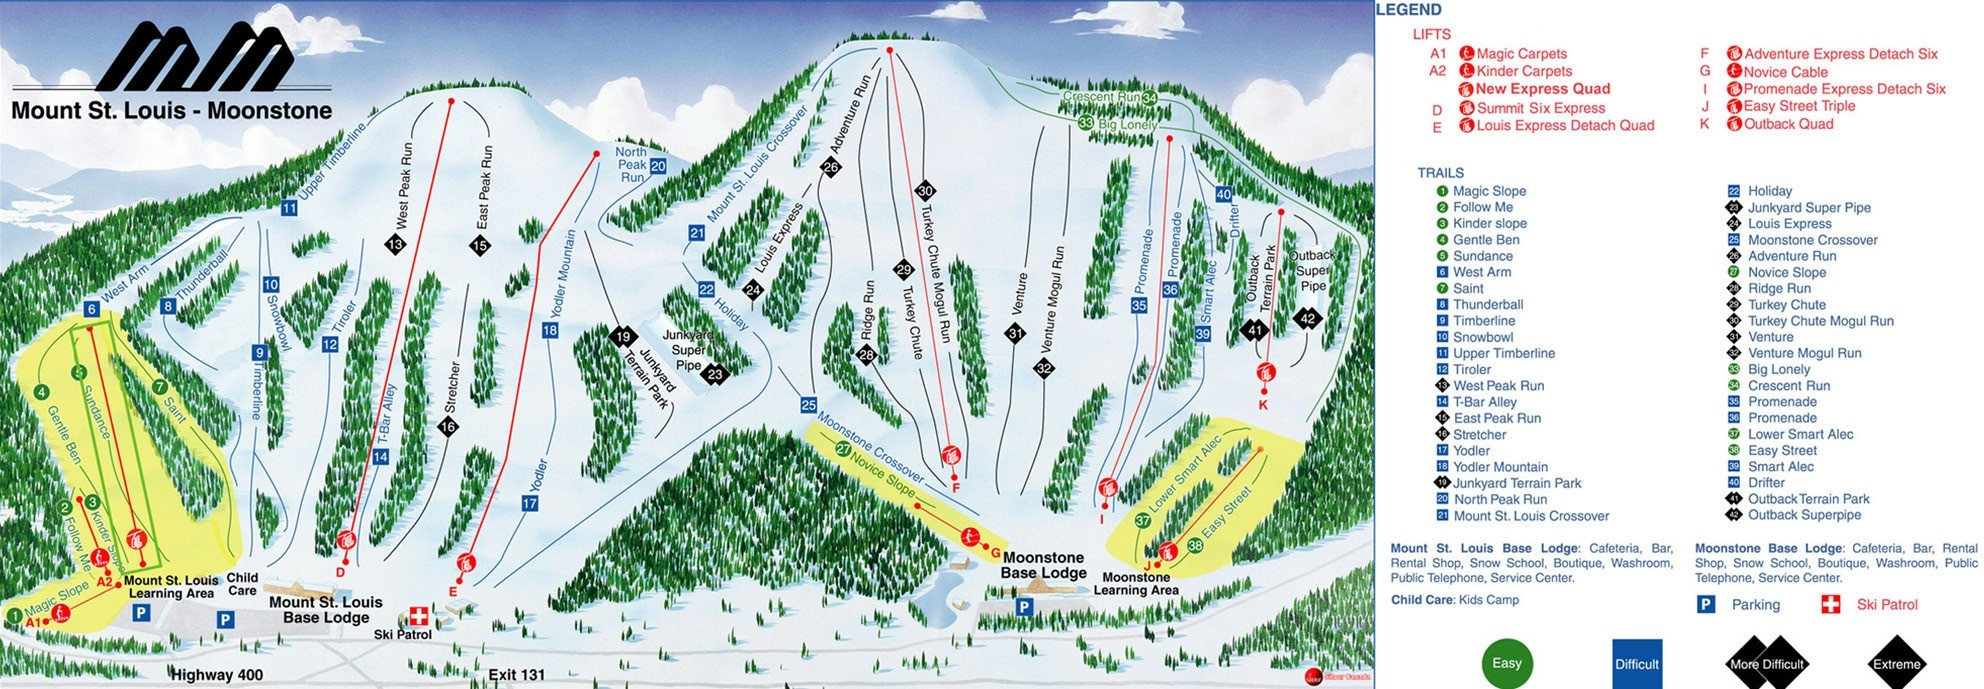 Mount St Louis Moonstone Trail Map Piste Map Panoramic